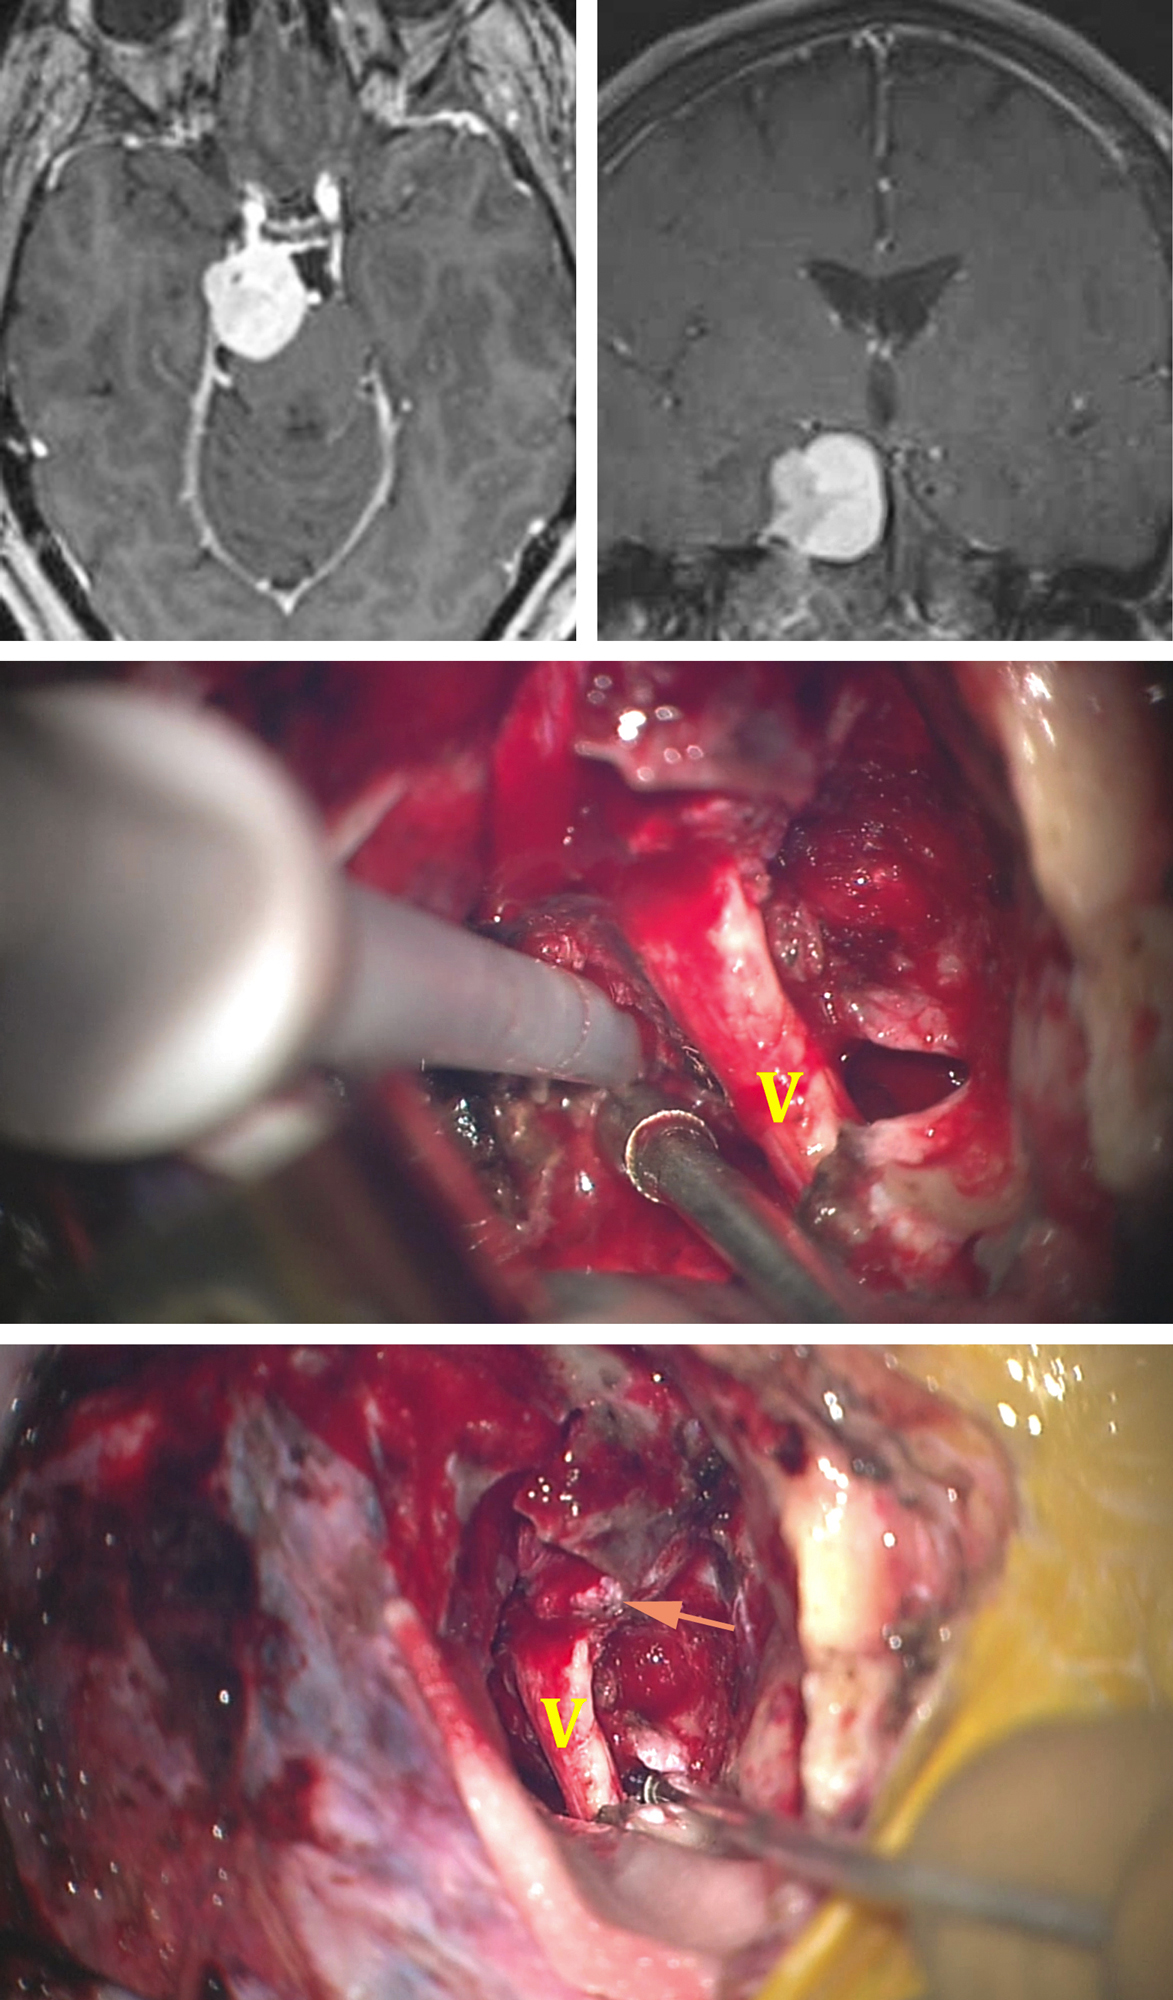 Figure 7: This right-sided upper petroclival meningioma was removed via an anterior petrosectomy (top photos). Note the slight extension of the tumor into the cavernous sinus. The middle intraoperative image illustrates the use of an ultrasonic aspirator for removing the tumor around CN V. The bottom image shows a final view of the operative field after tumor removal. The residual tumor infiltrating the cavernous sinus is labeled with an arrow.